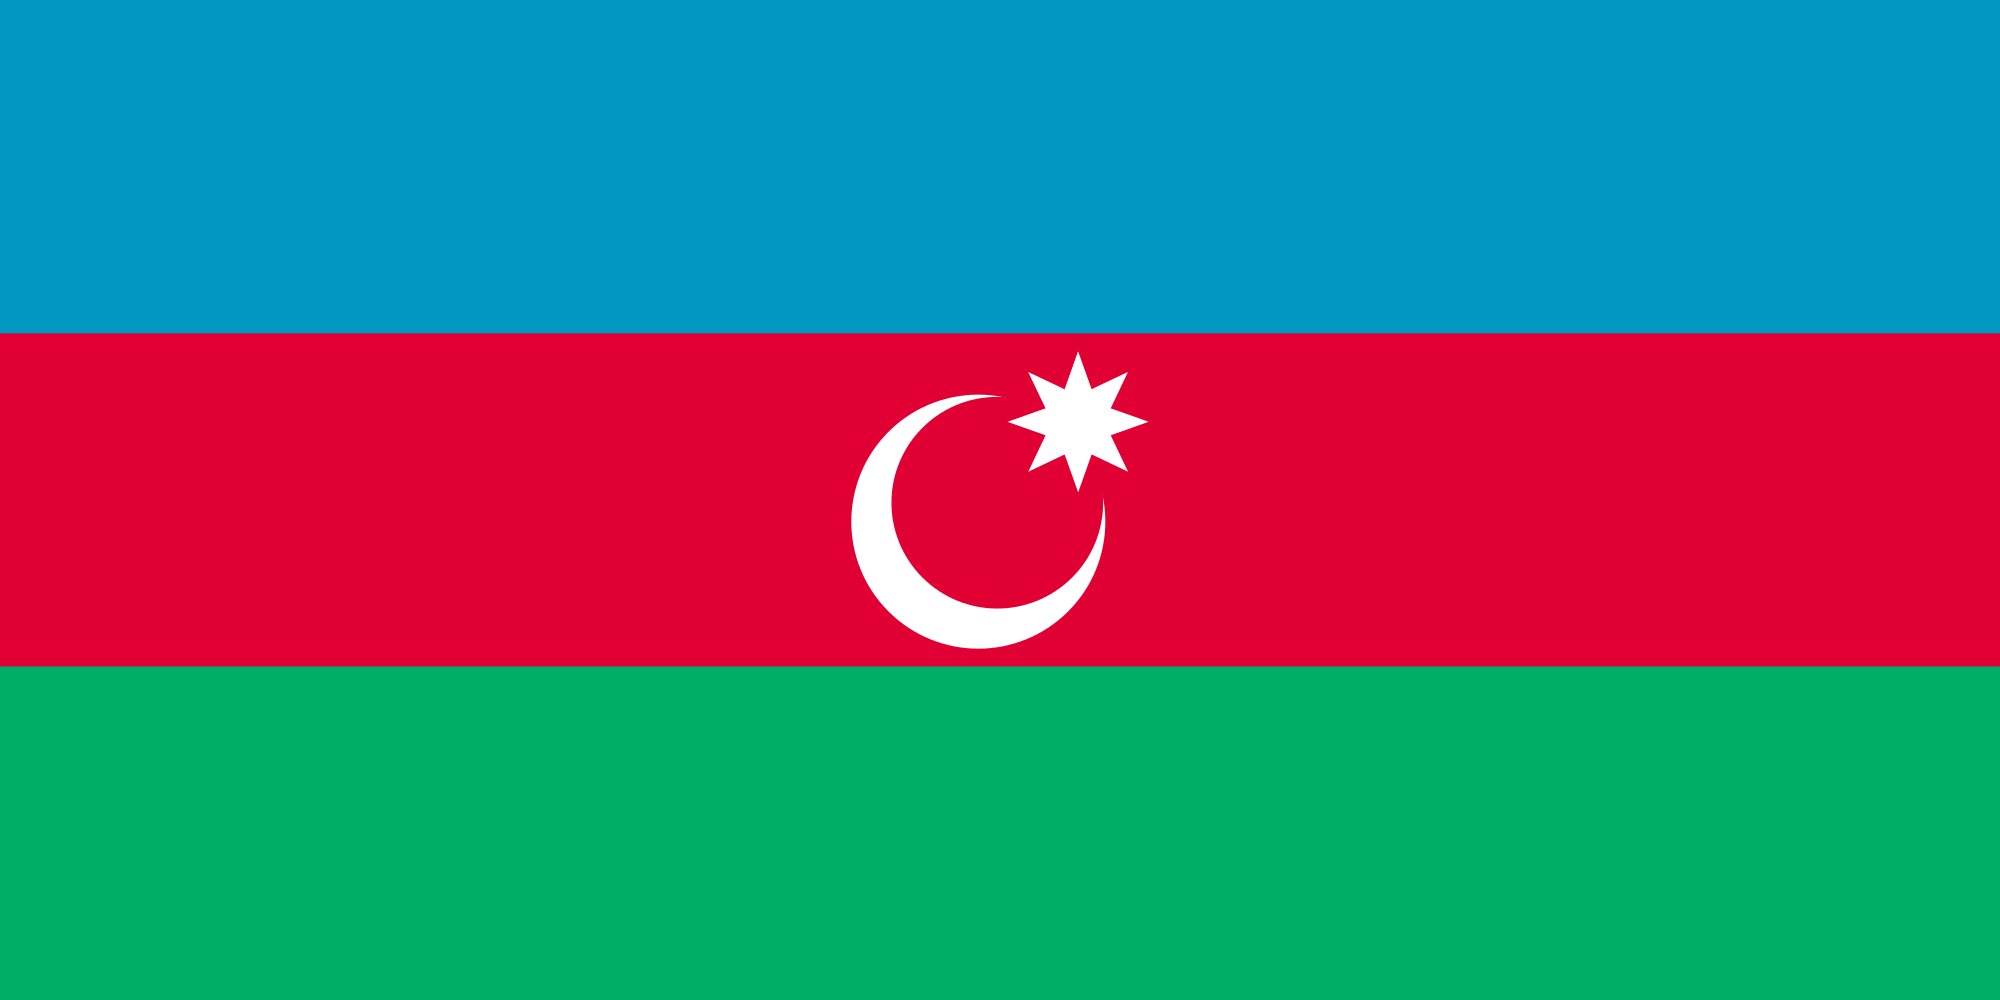 HD Quality Wallpaper | Collection: Misc, 2000x1000 Flag Of Azerbaijan